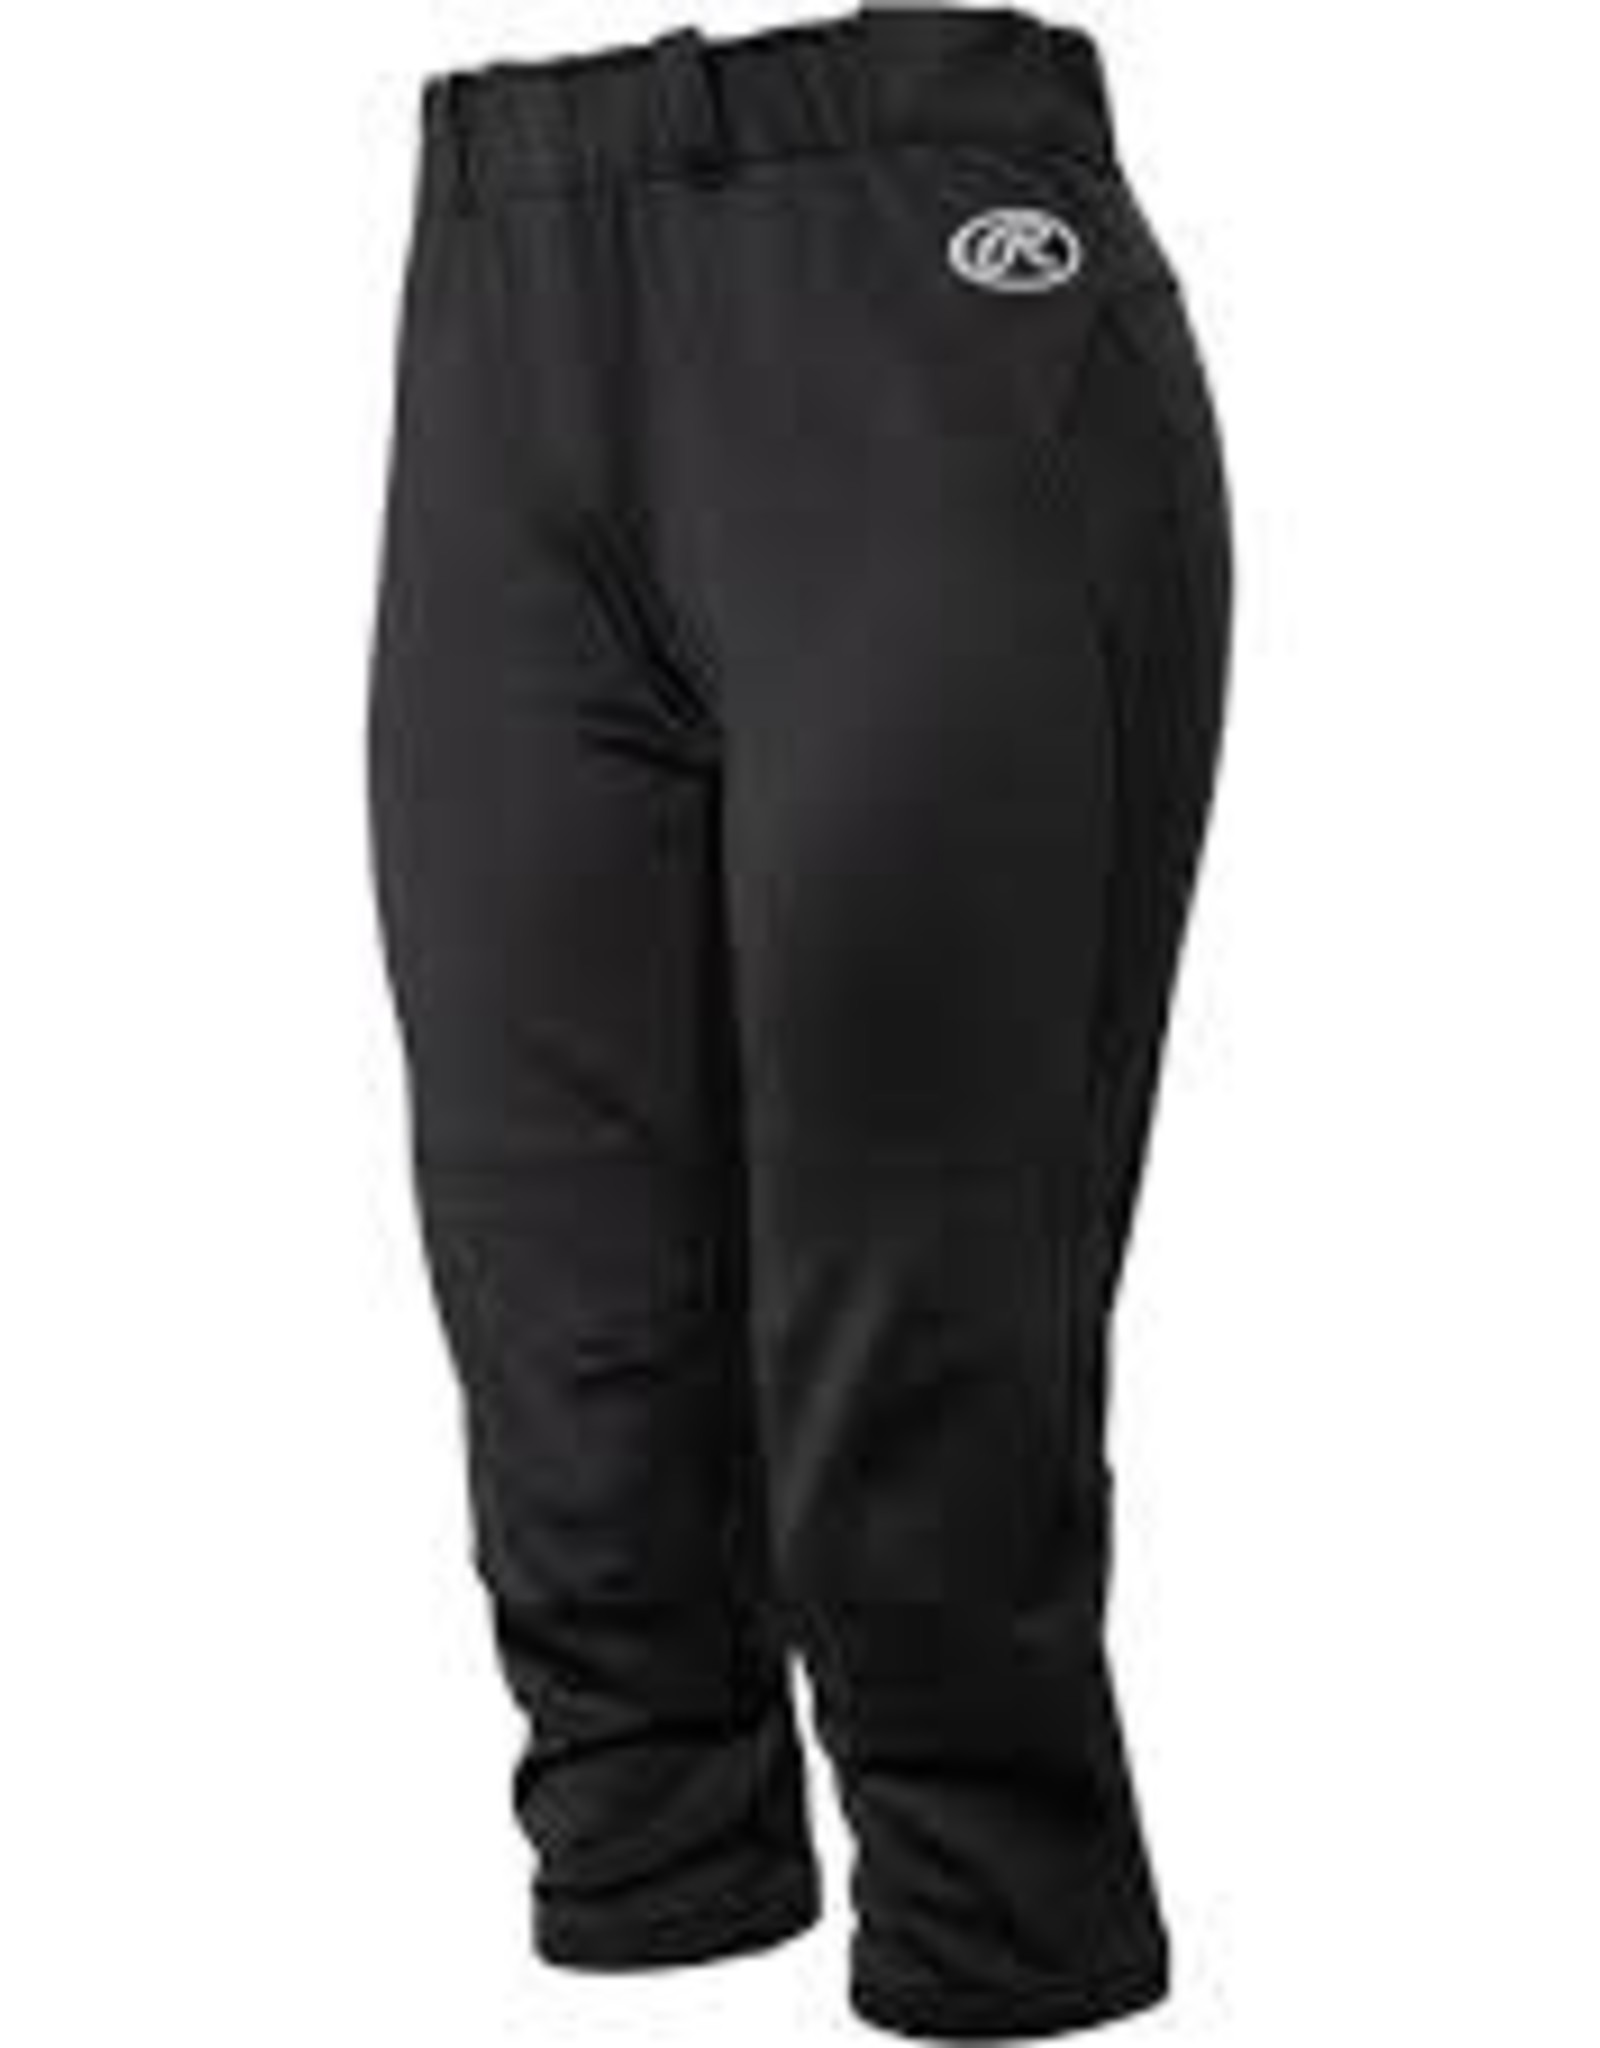 Rawlings Pants Baseball Women No Zip Yoga XL